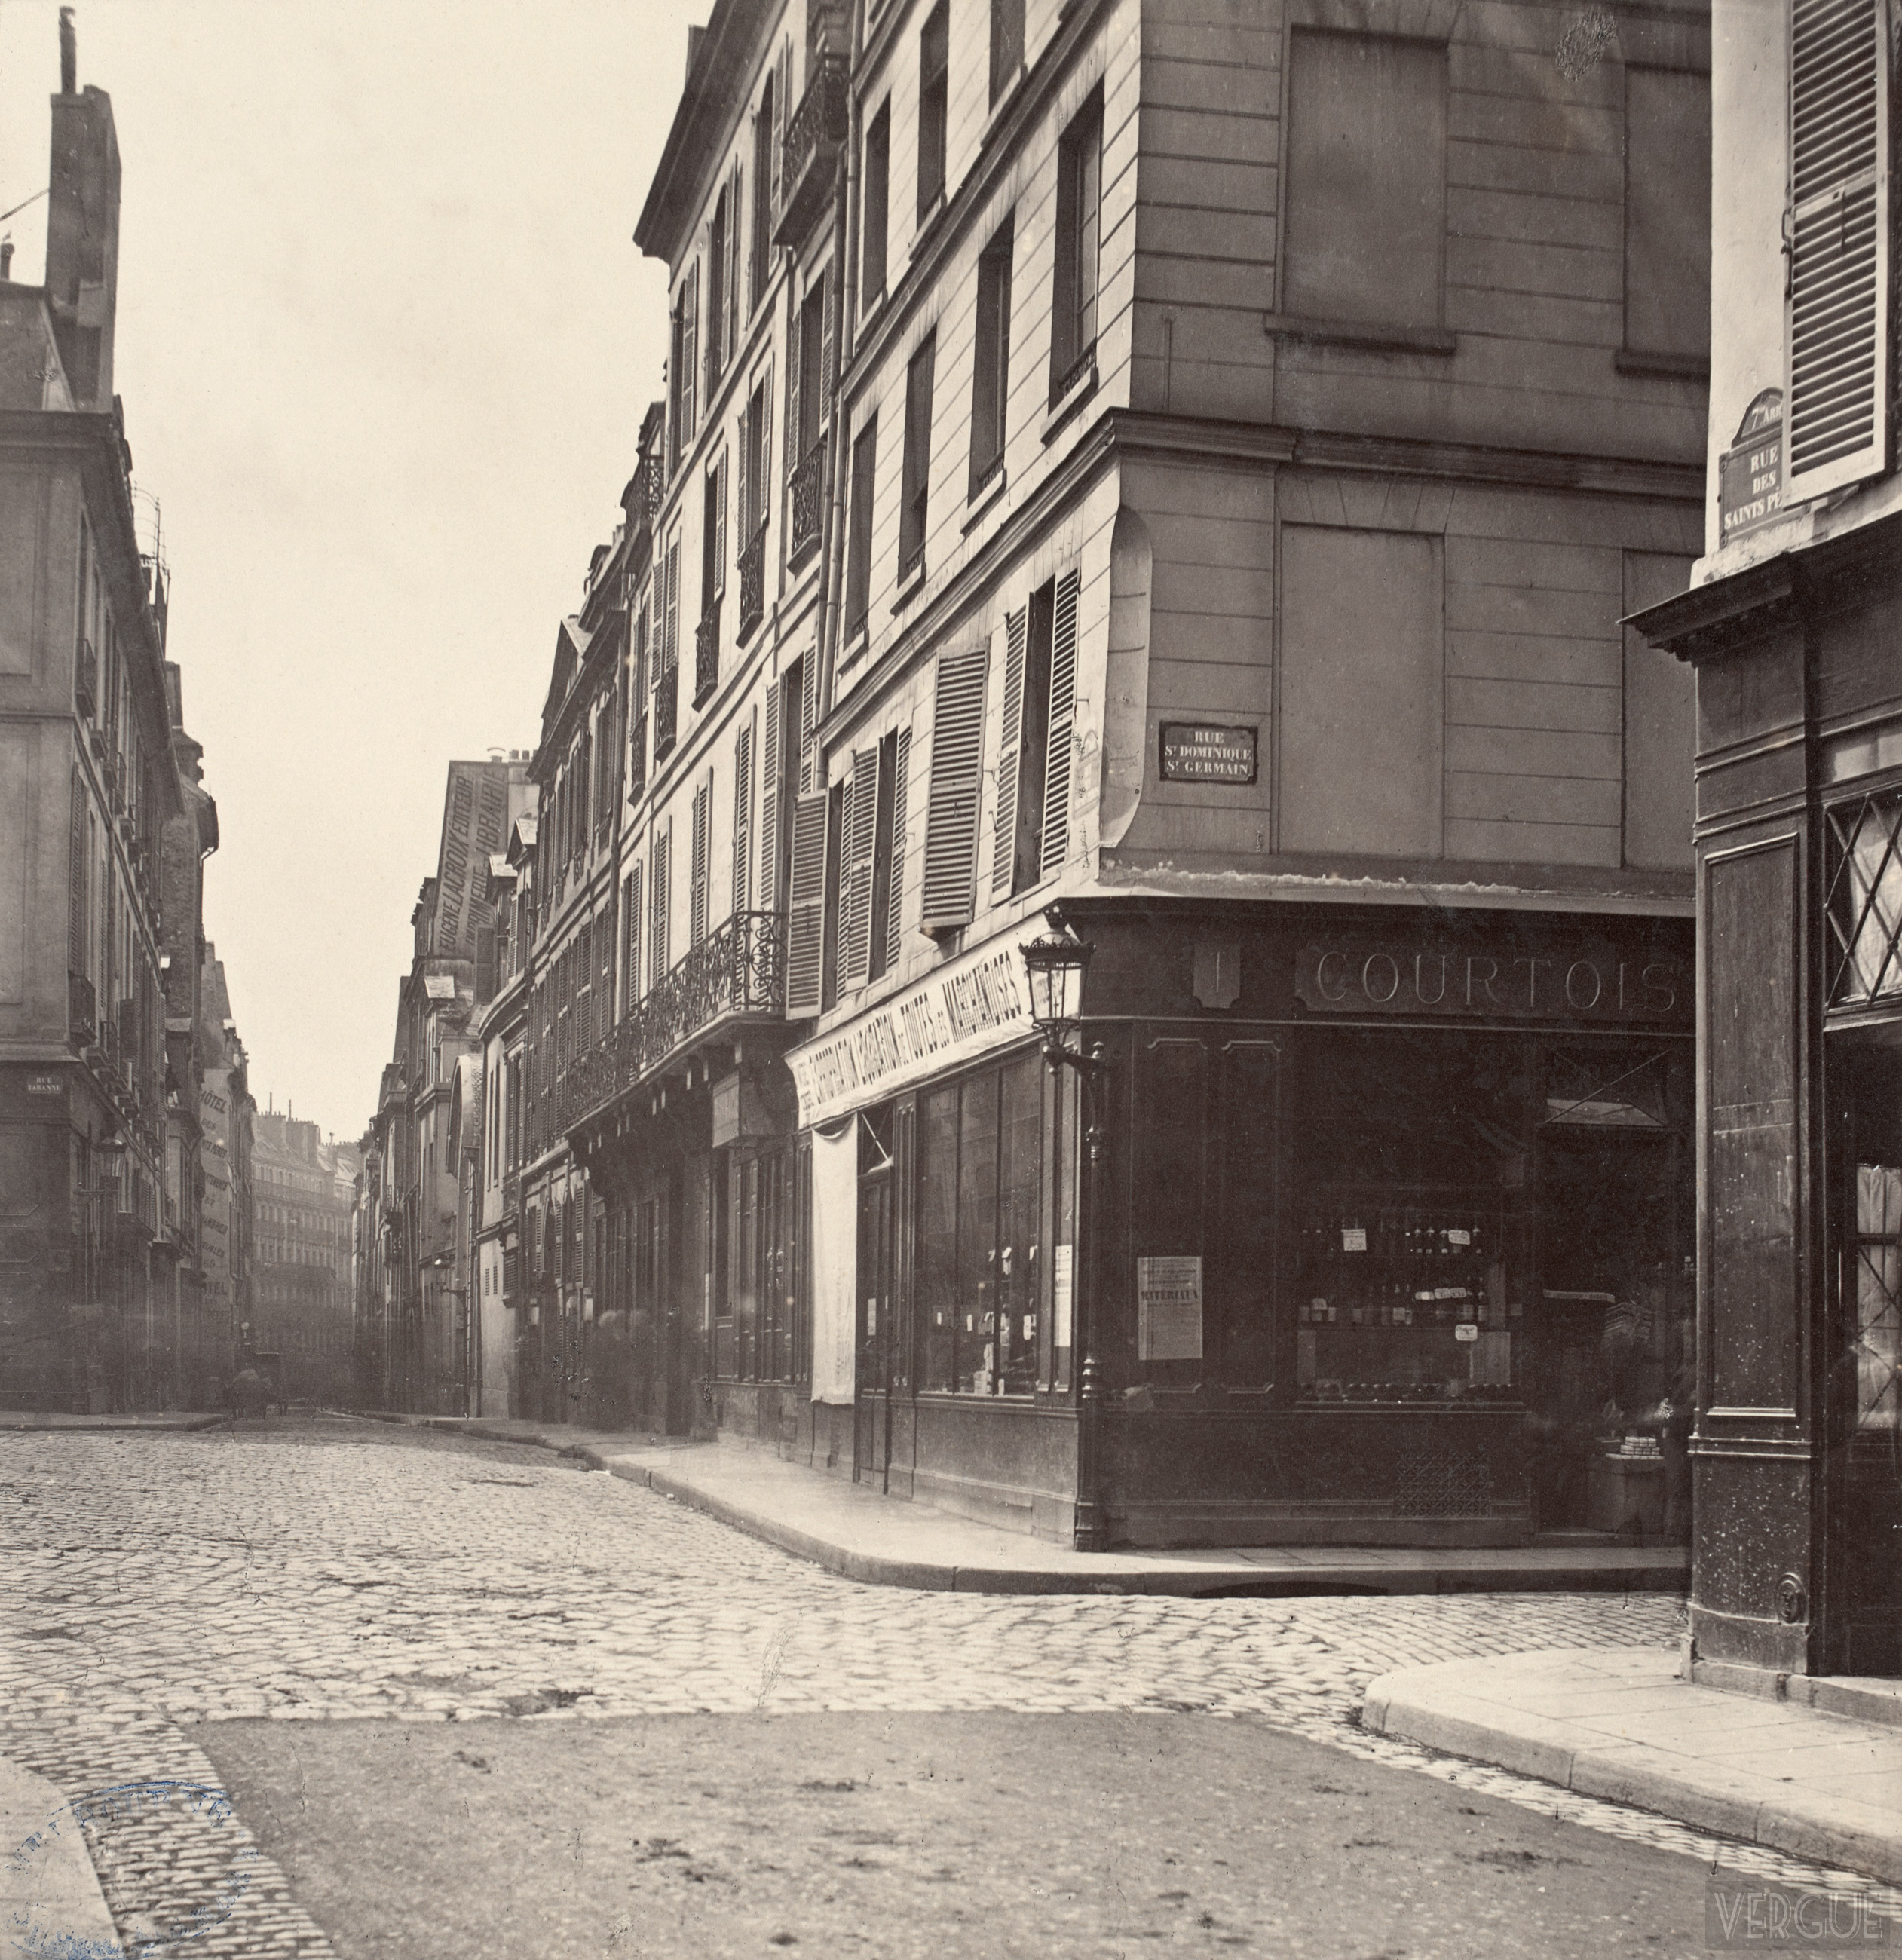 Rue des saint p res c 1877 vergue for Carrelage du sud boulevard saint germain